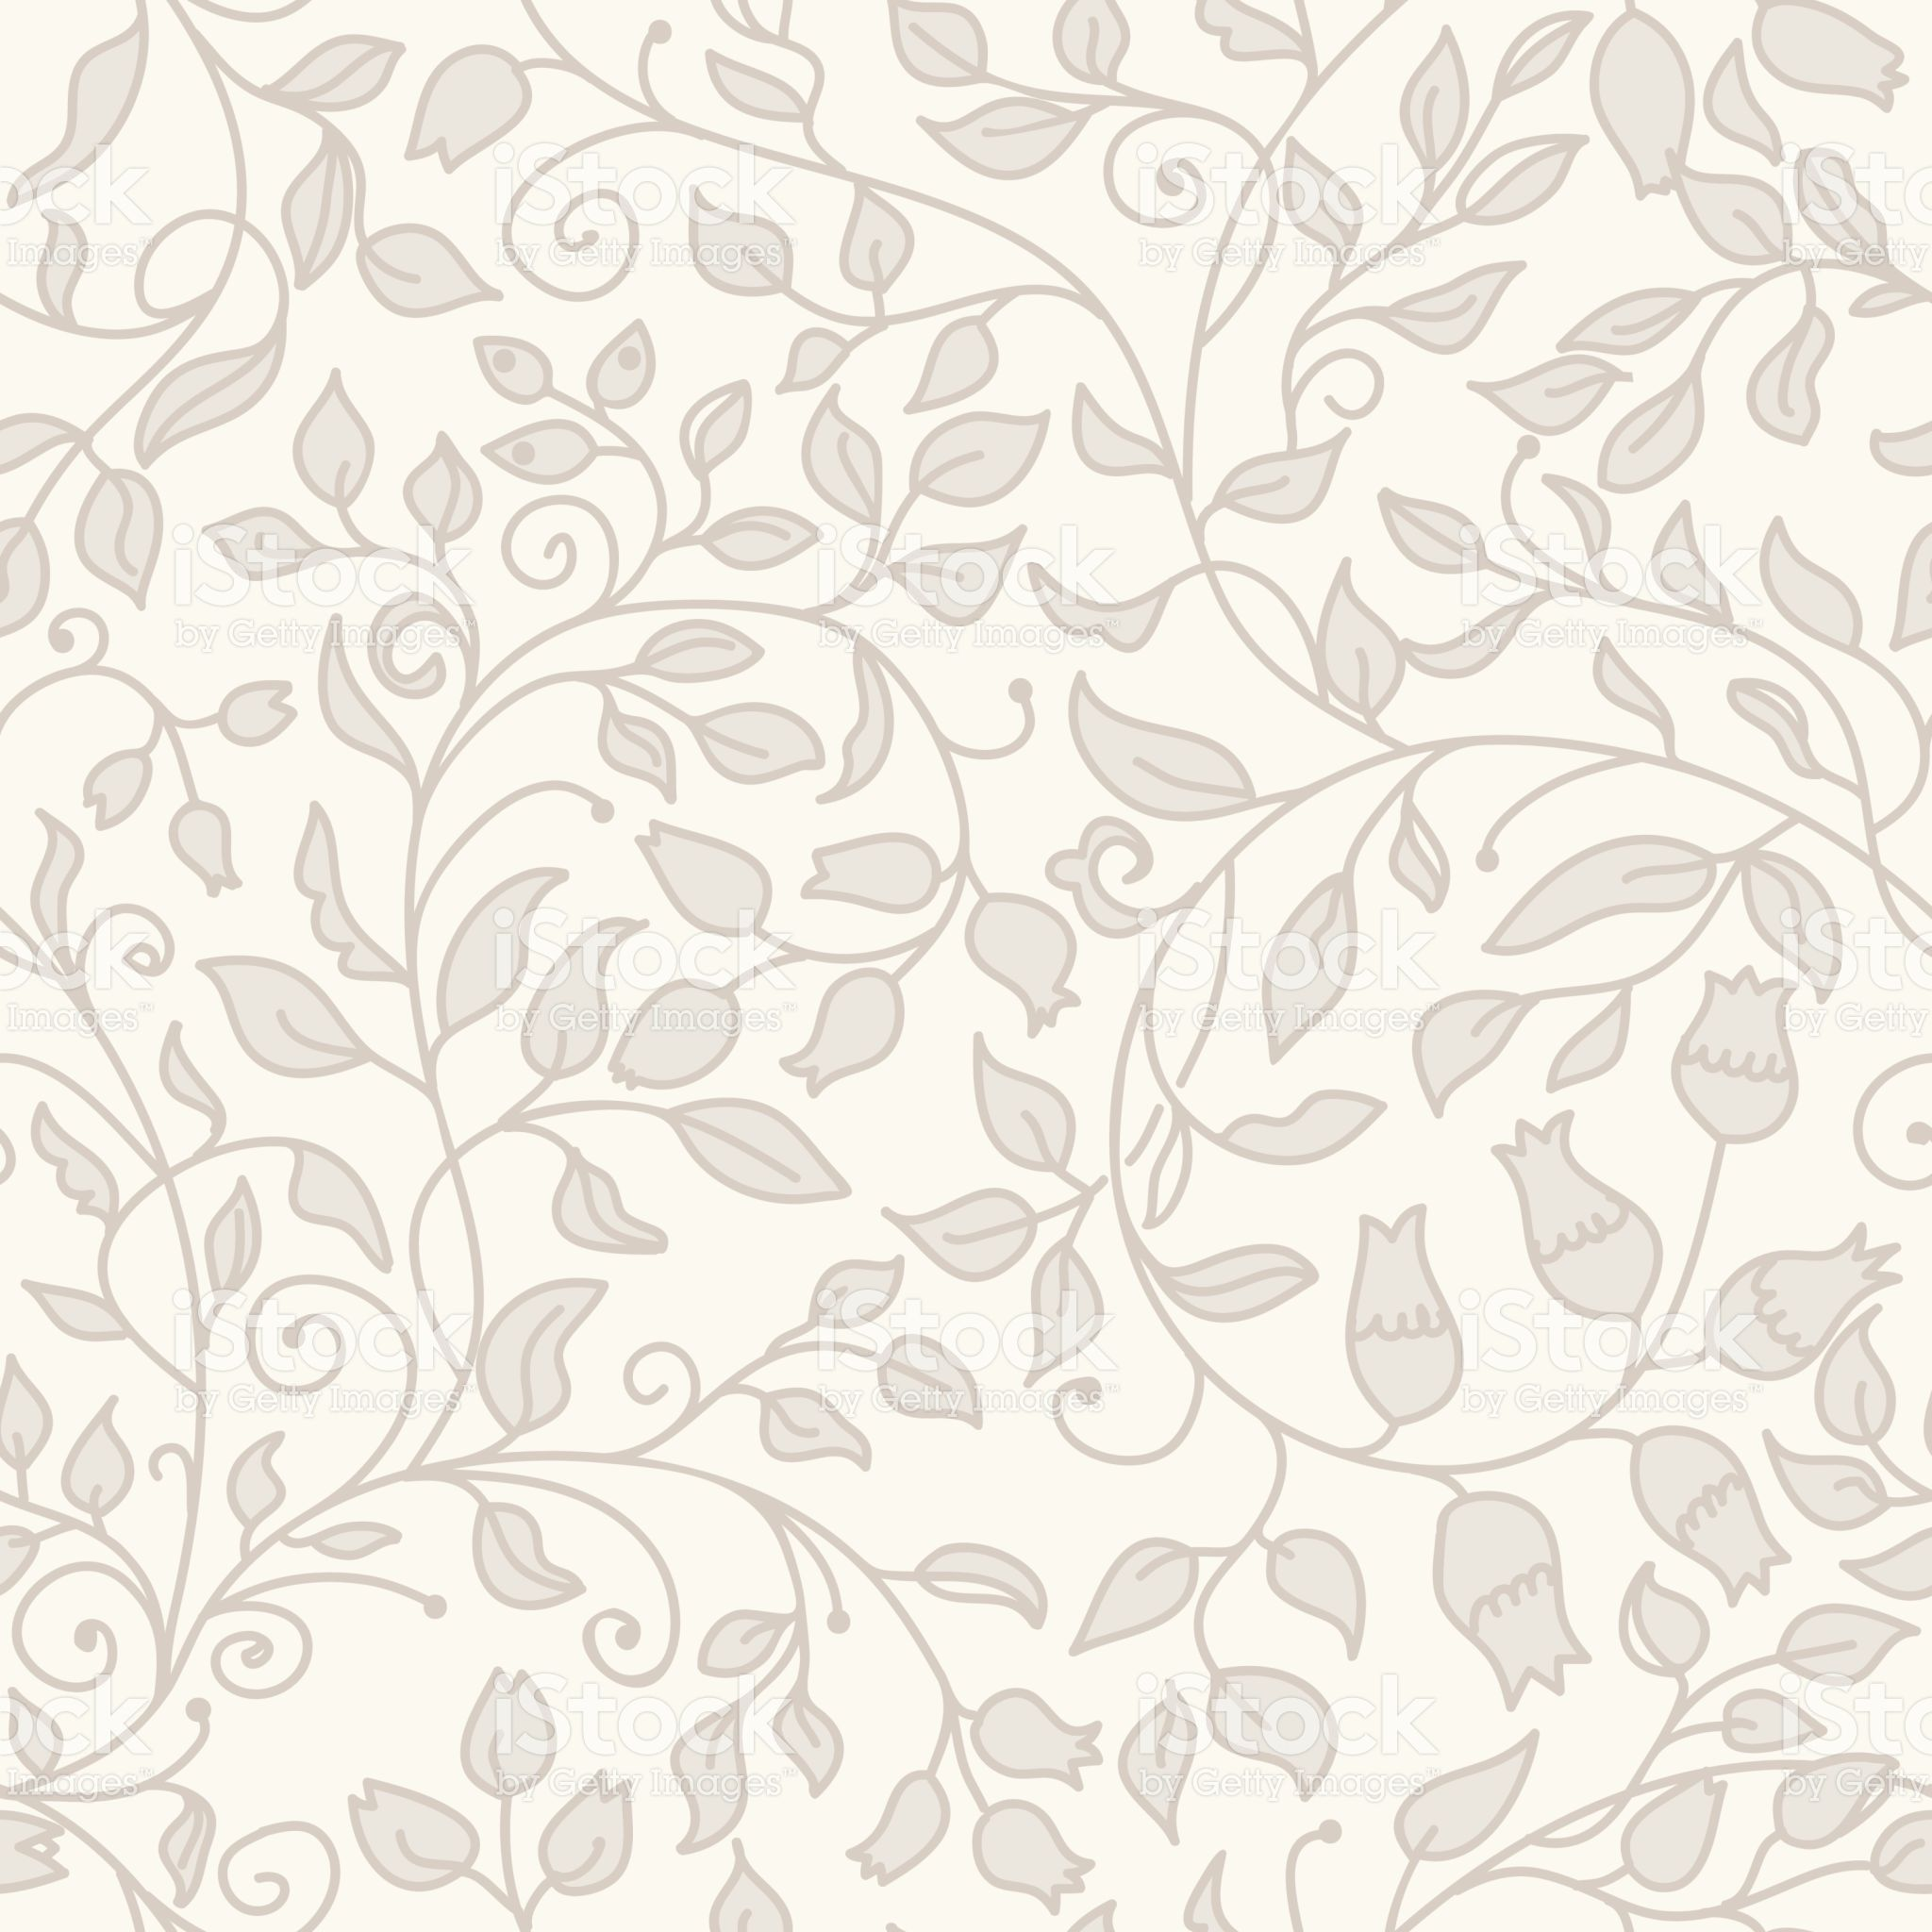 Black Flower And Bud Pattern Royalty Free Stock Photos: Seamless Floral Pattern In Folk Style With Flowers, Leaves